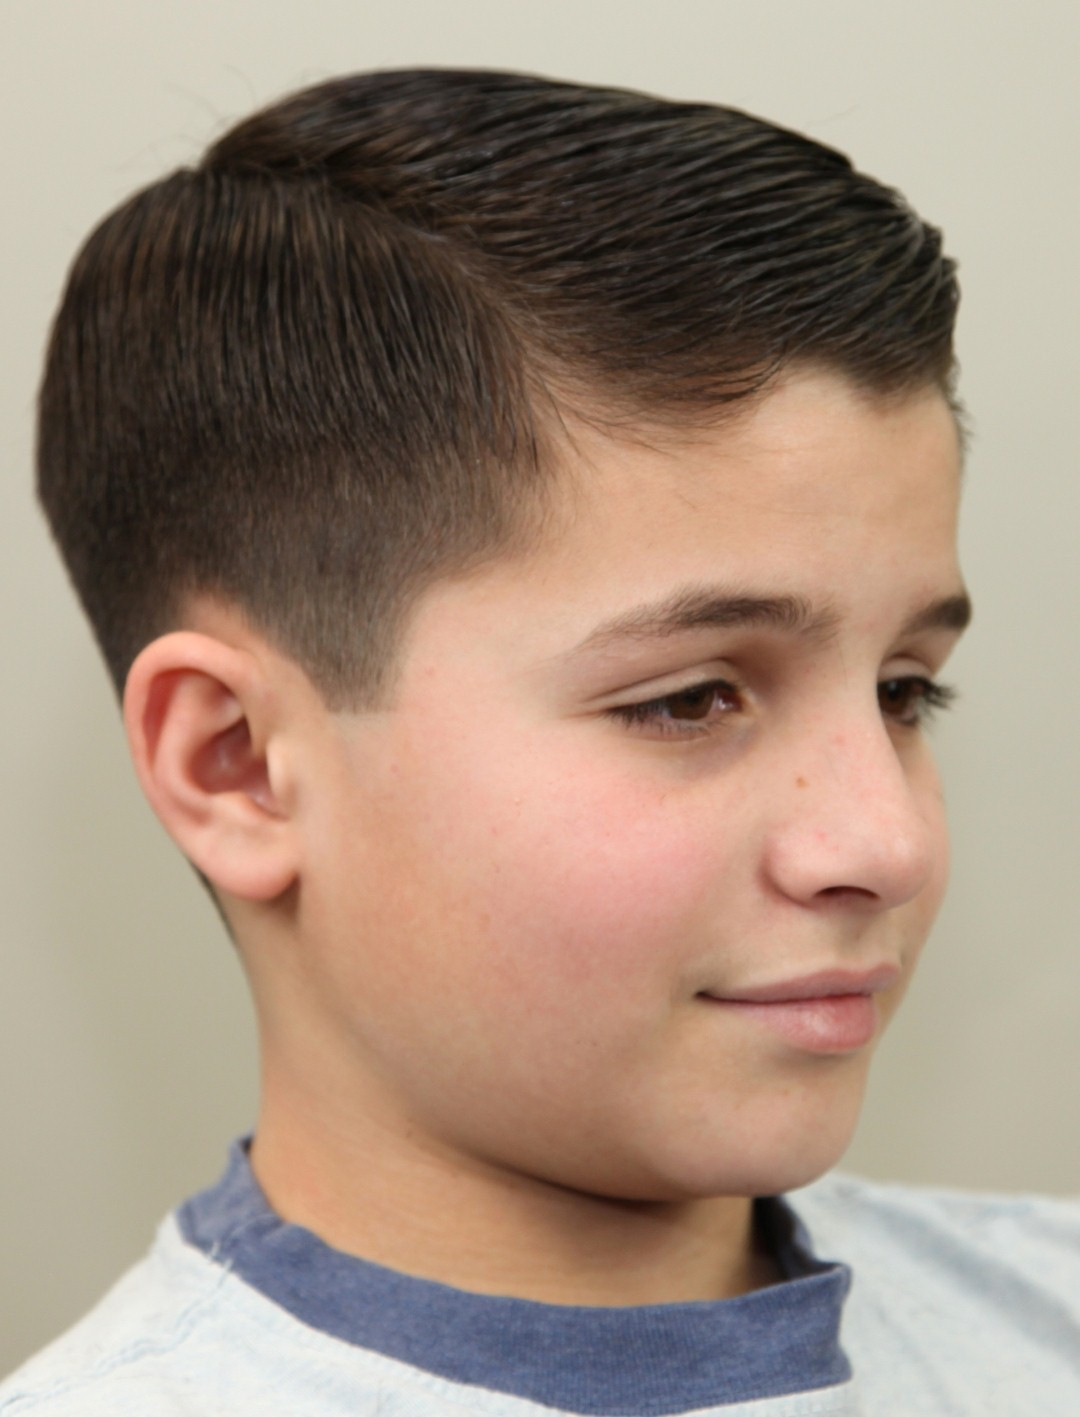 Kids Hair Style 2015 Kids Hairstyles  Hairstyle Archives